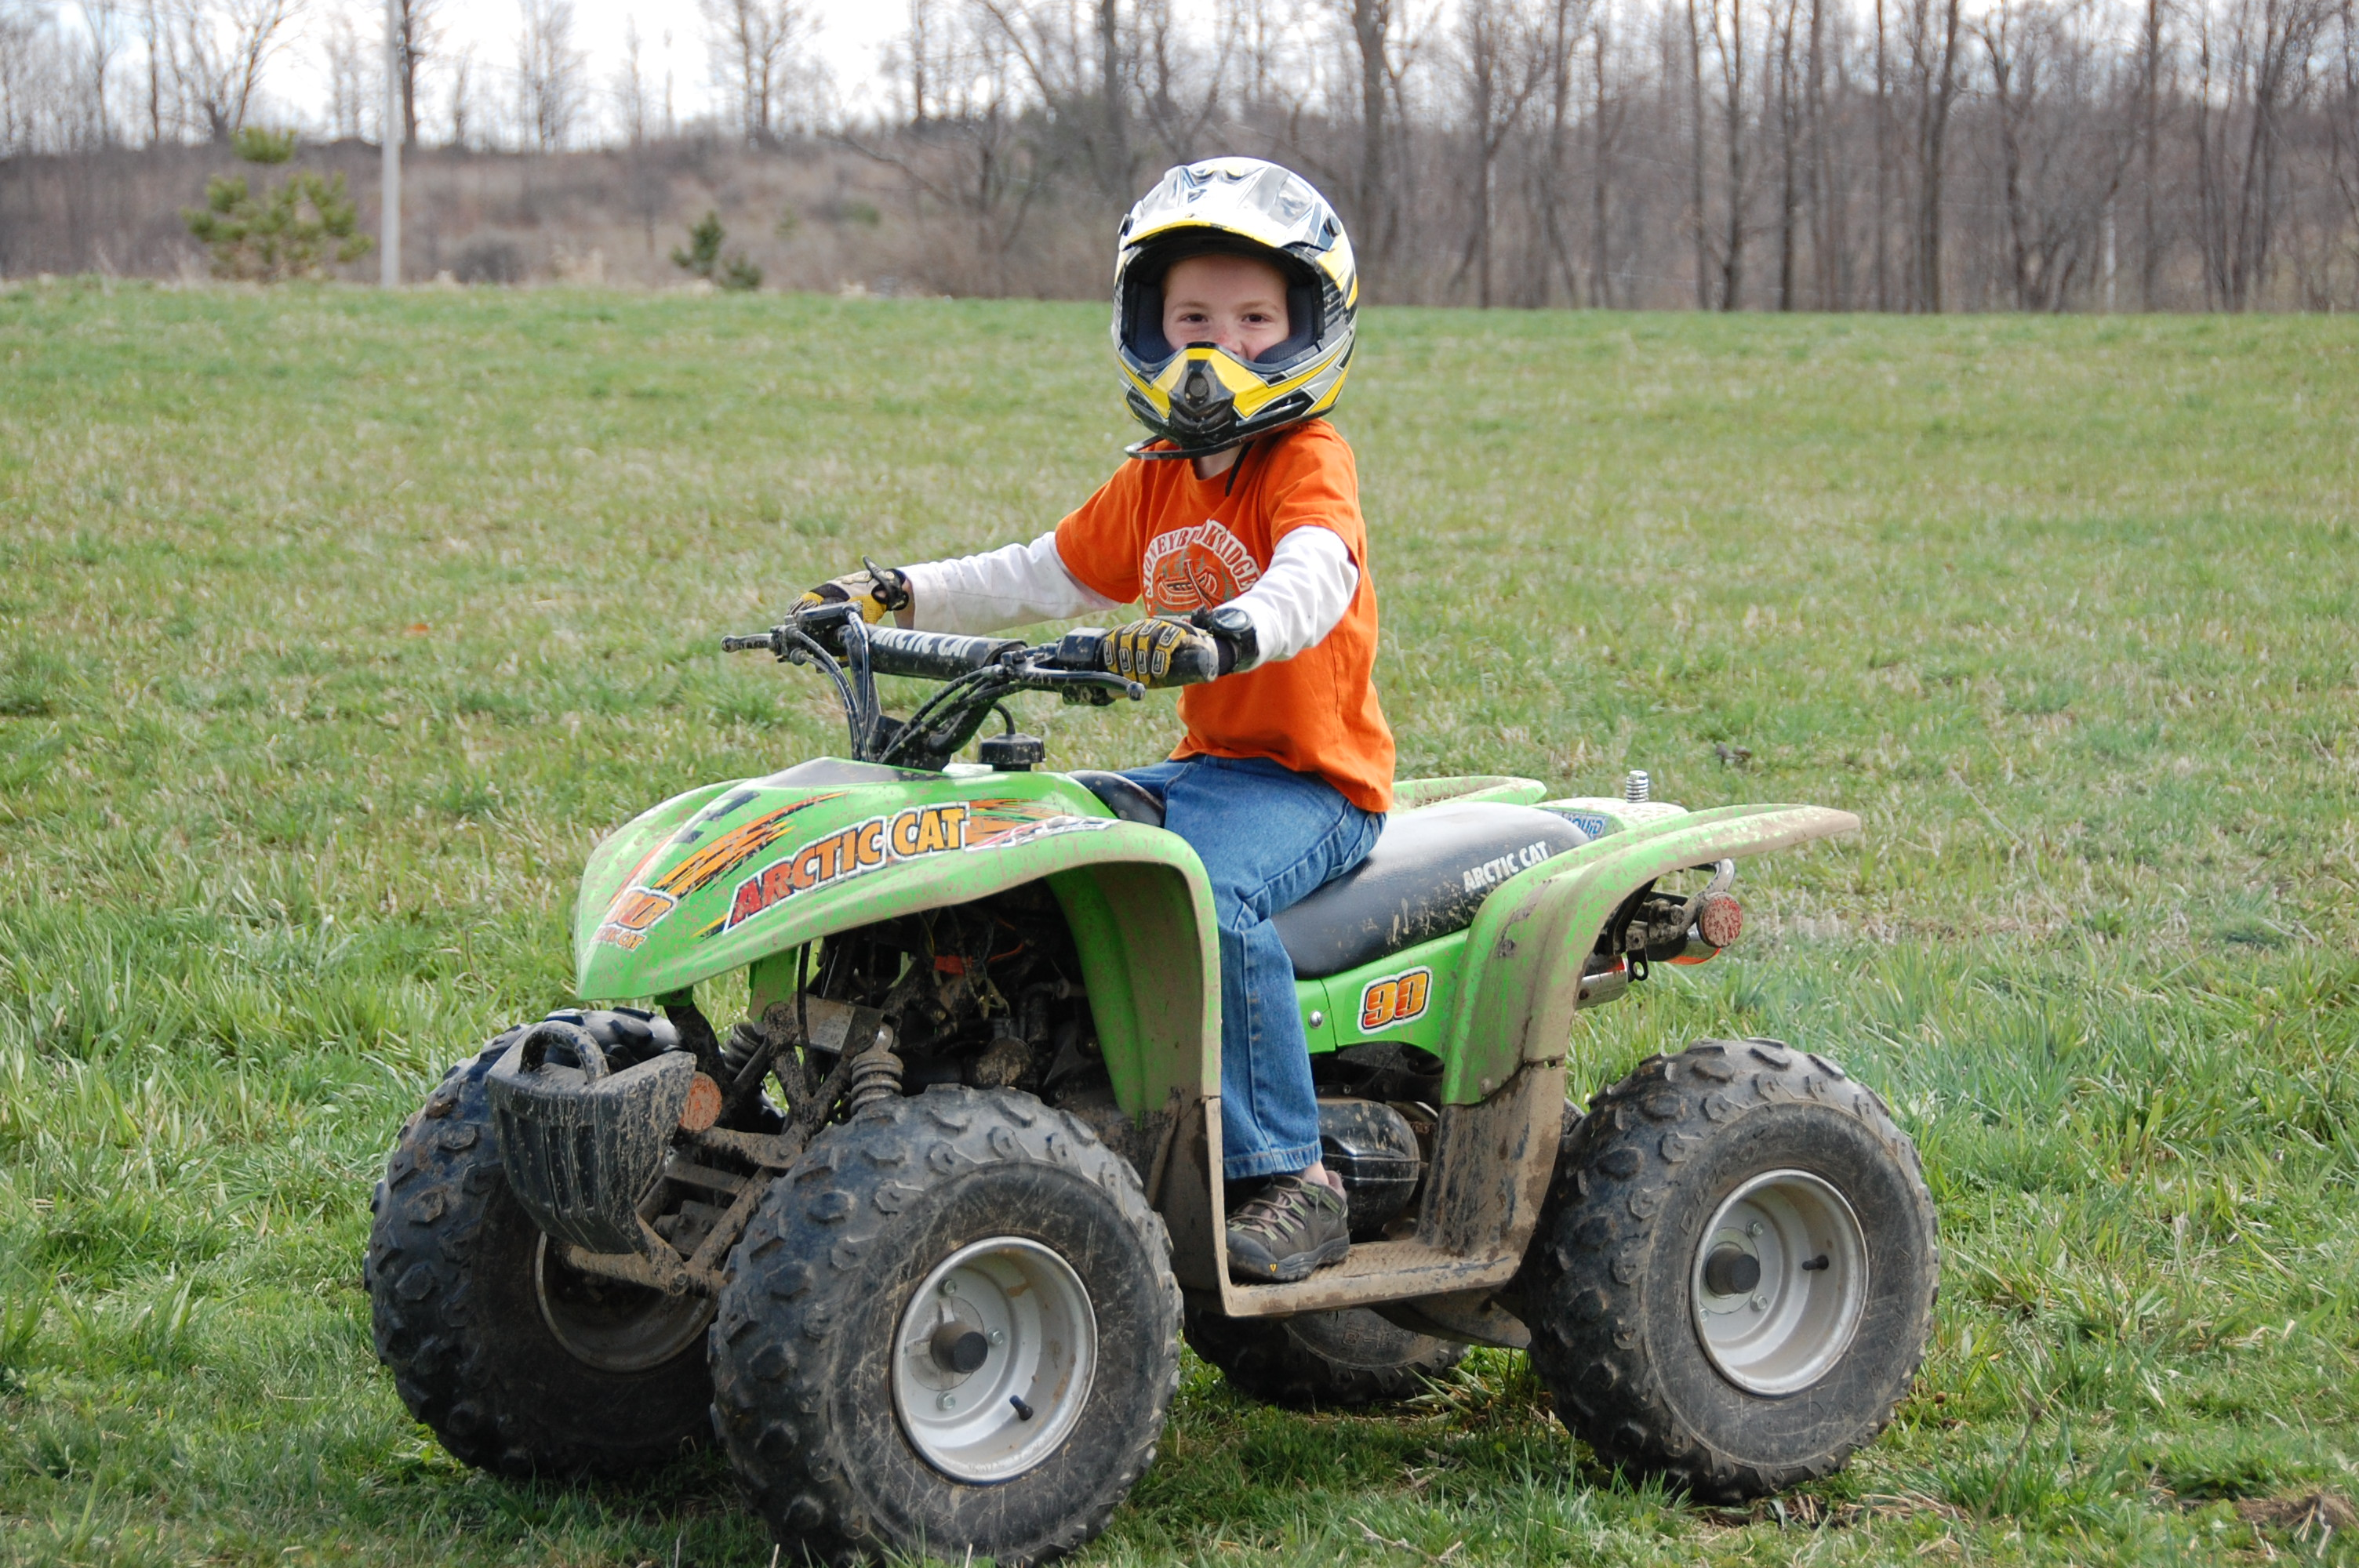 Cooper's turn to take the 4-wheeler for a spin.